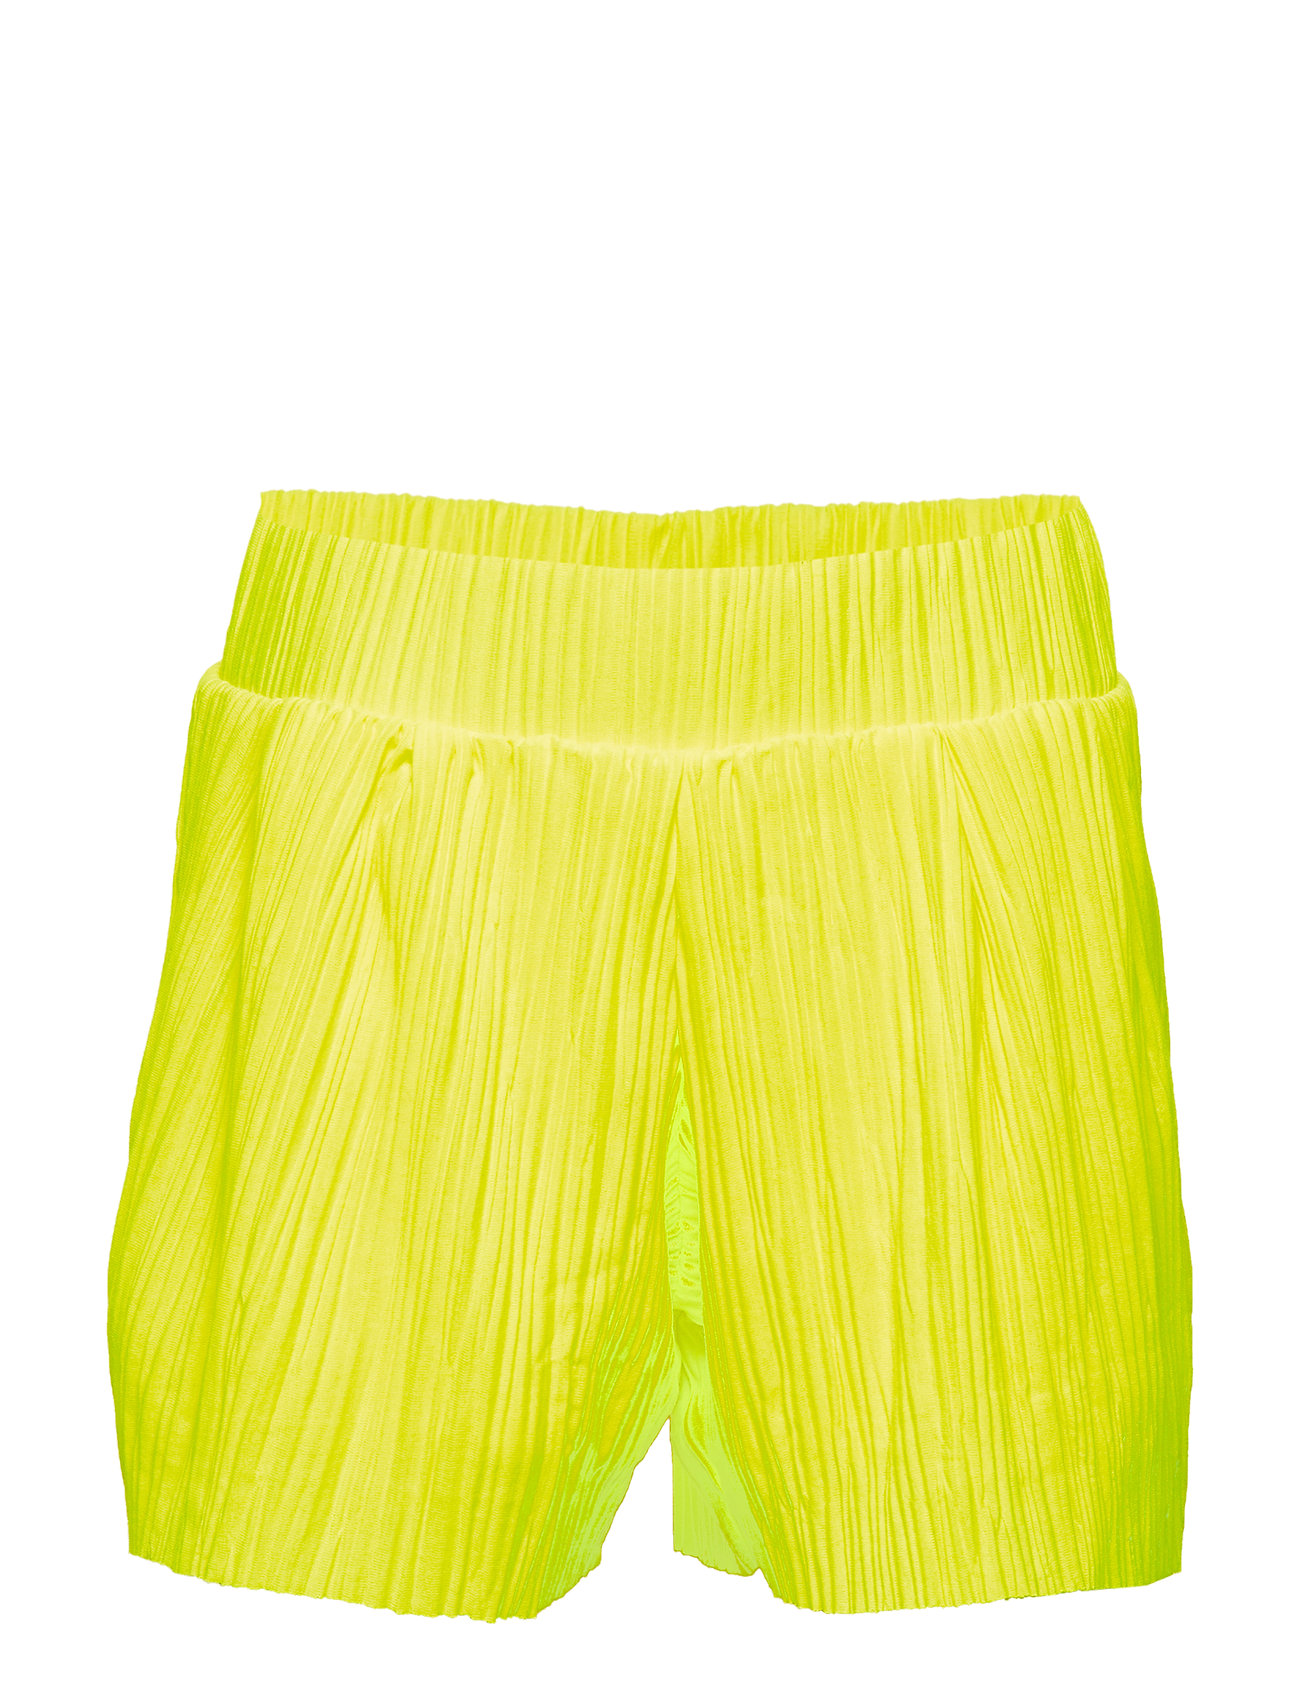 LMTD NLFDAHLIA LOOSE SHORTS W. LINING - SAFETY YELLOW